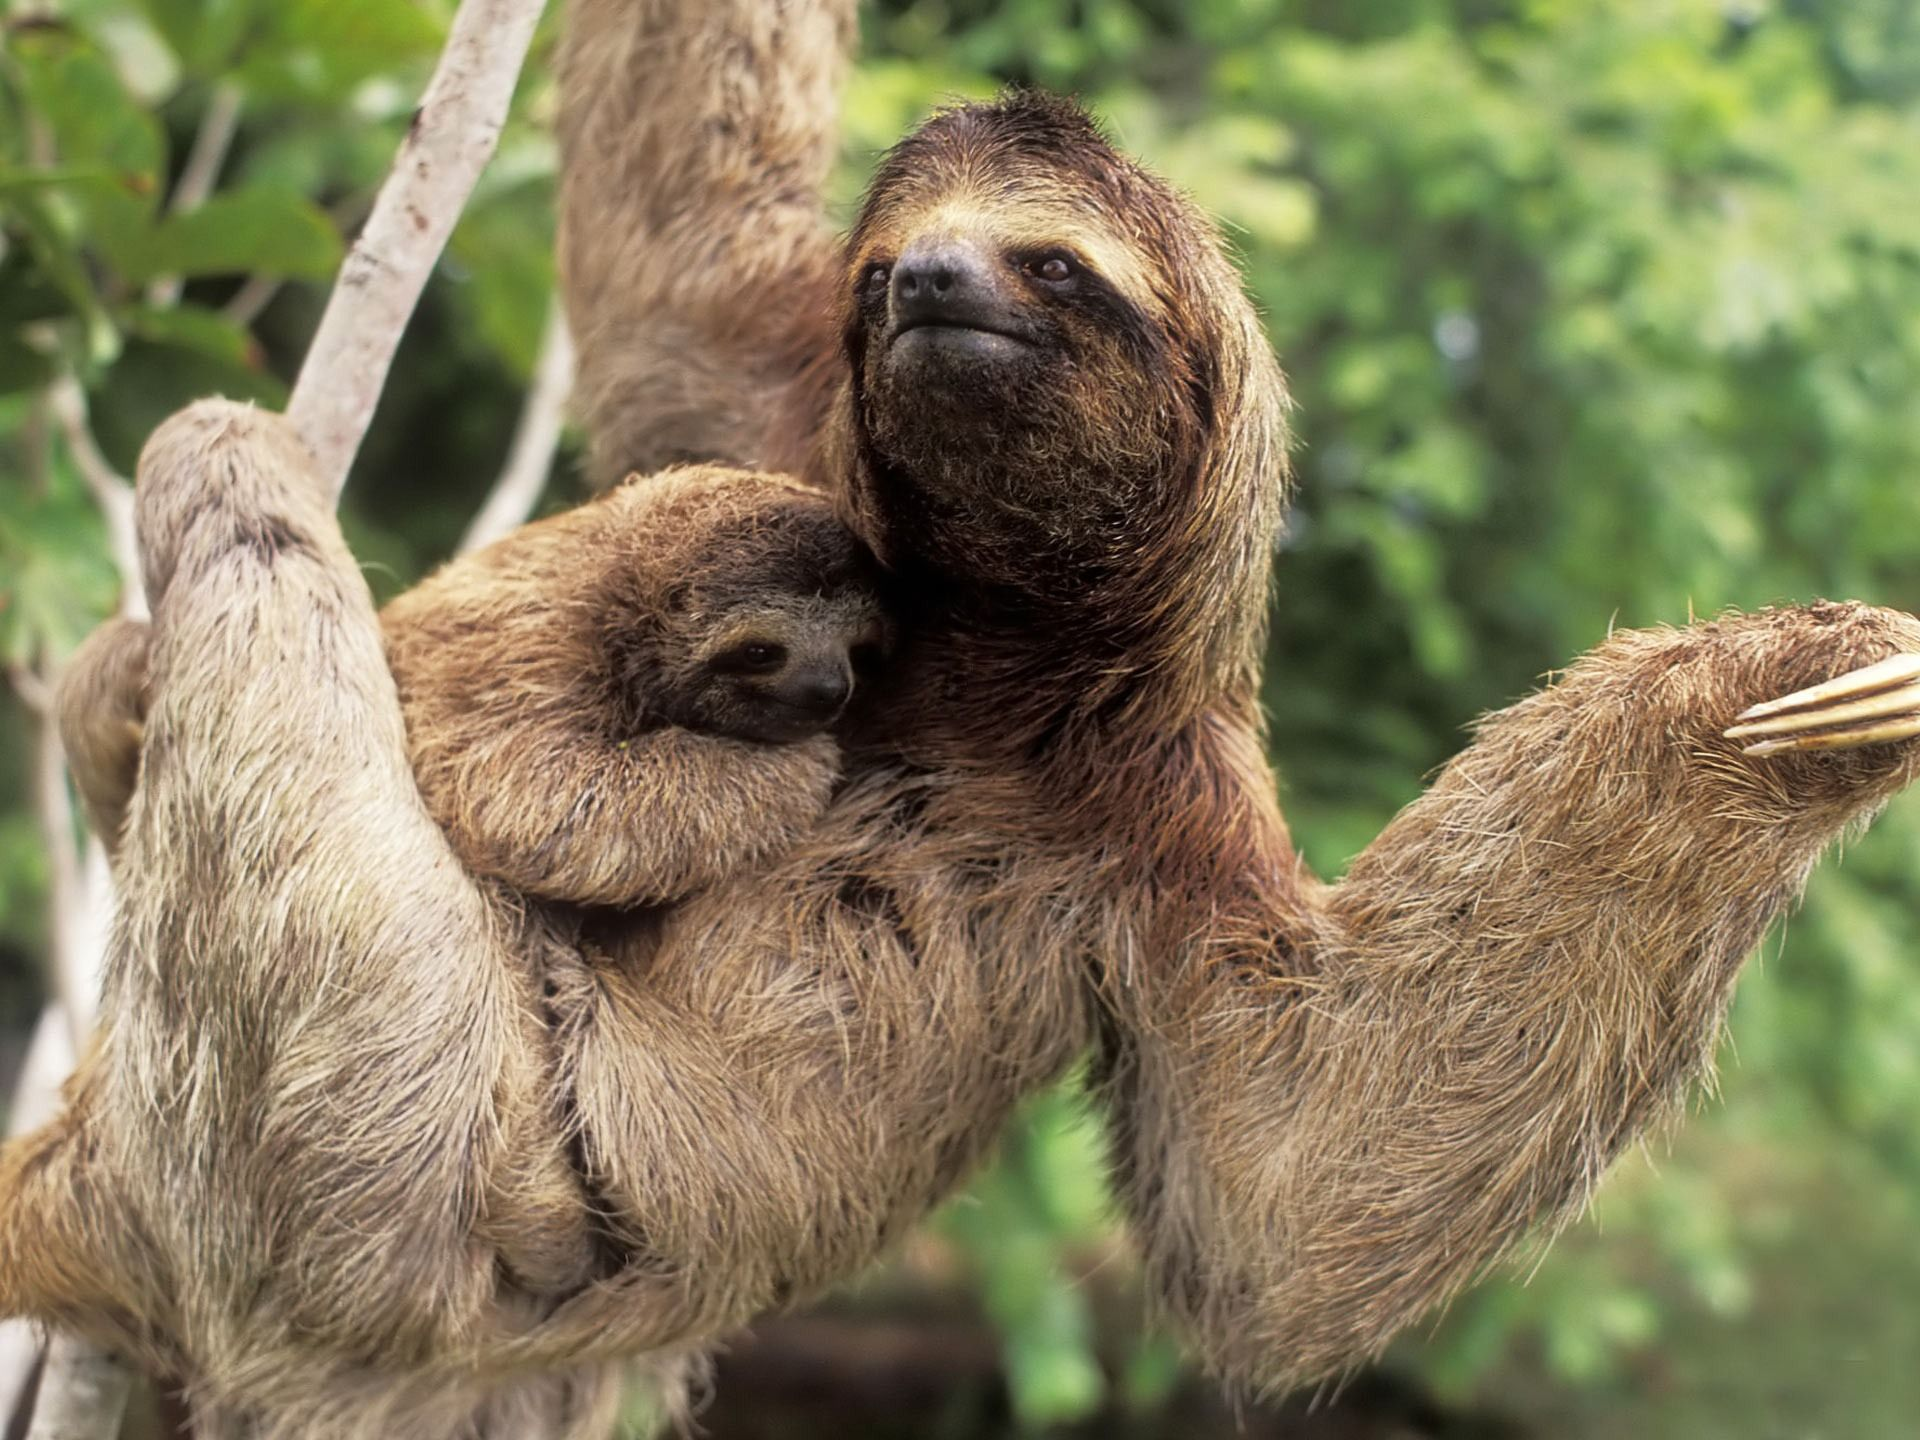 Sloth going to the bathroom - Sloth Baby